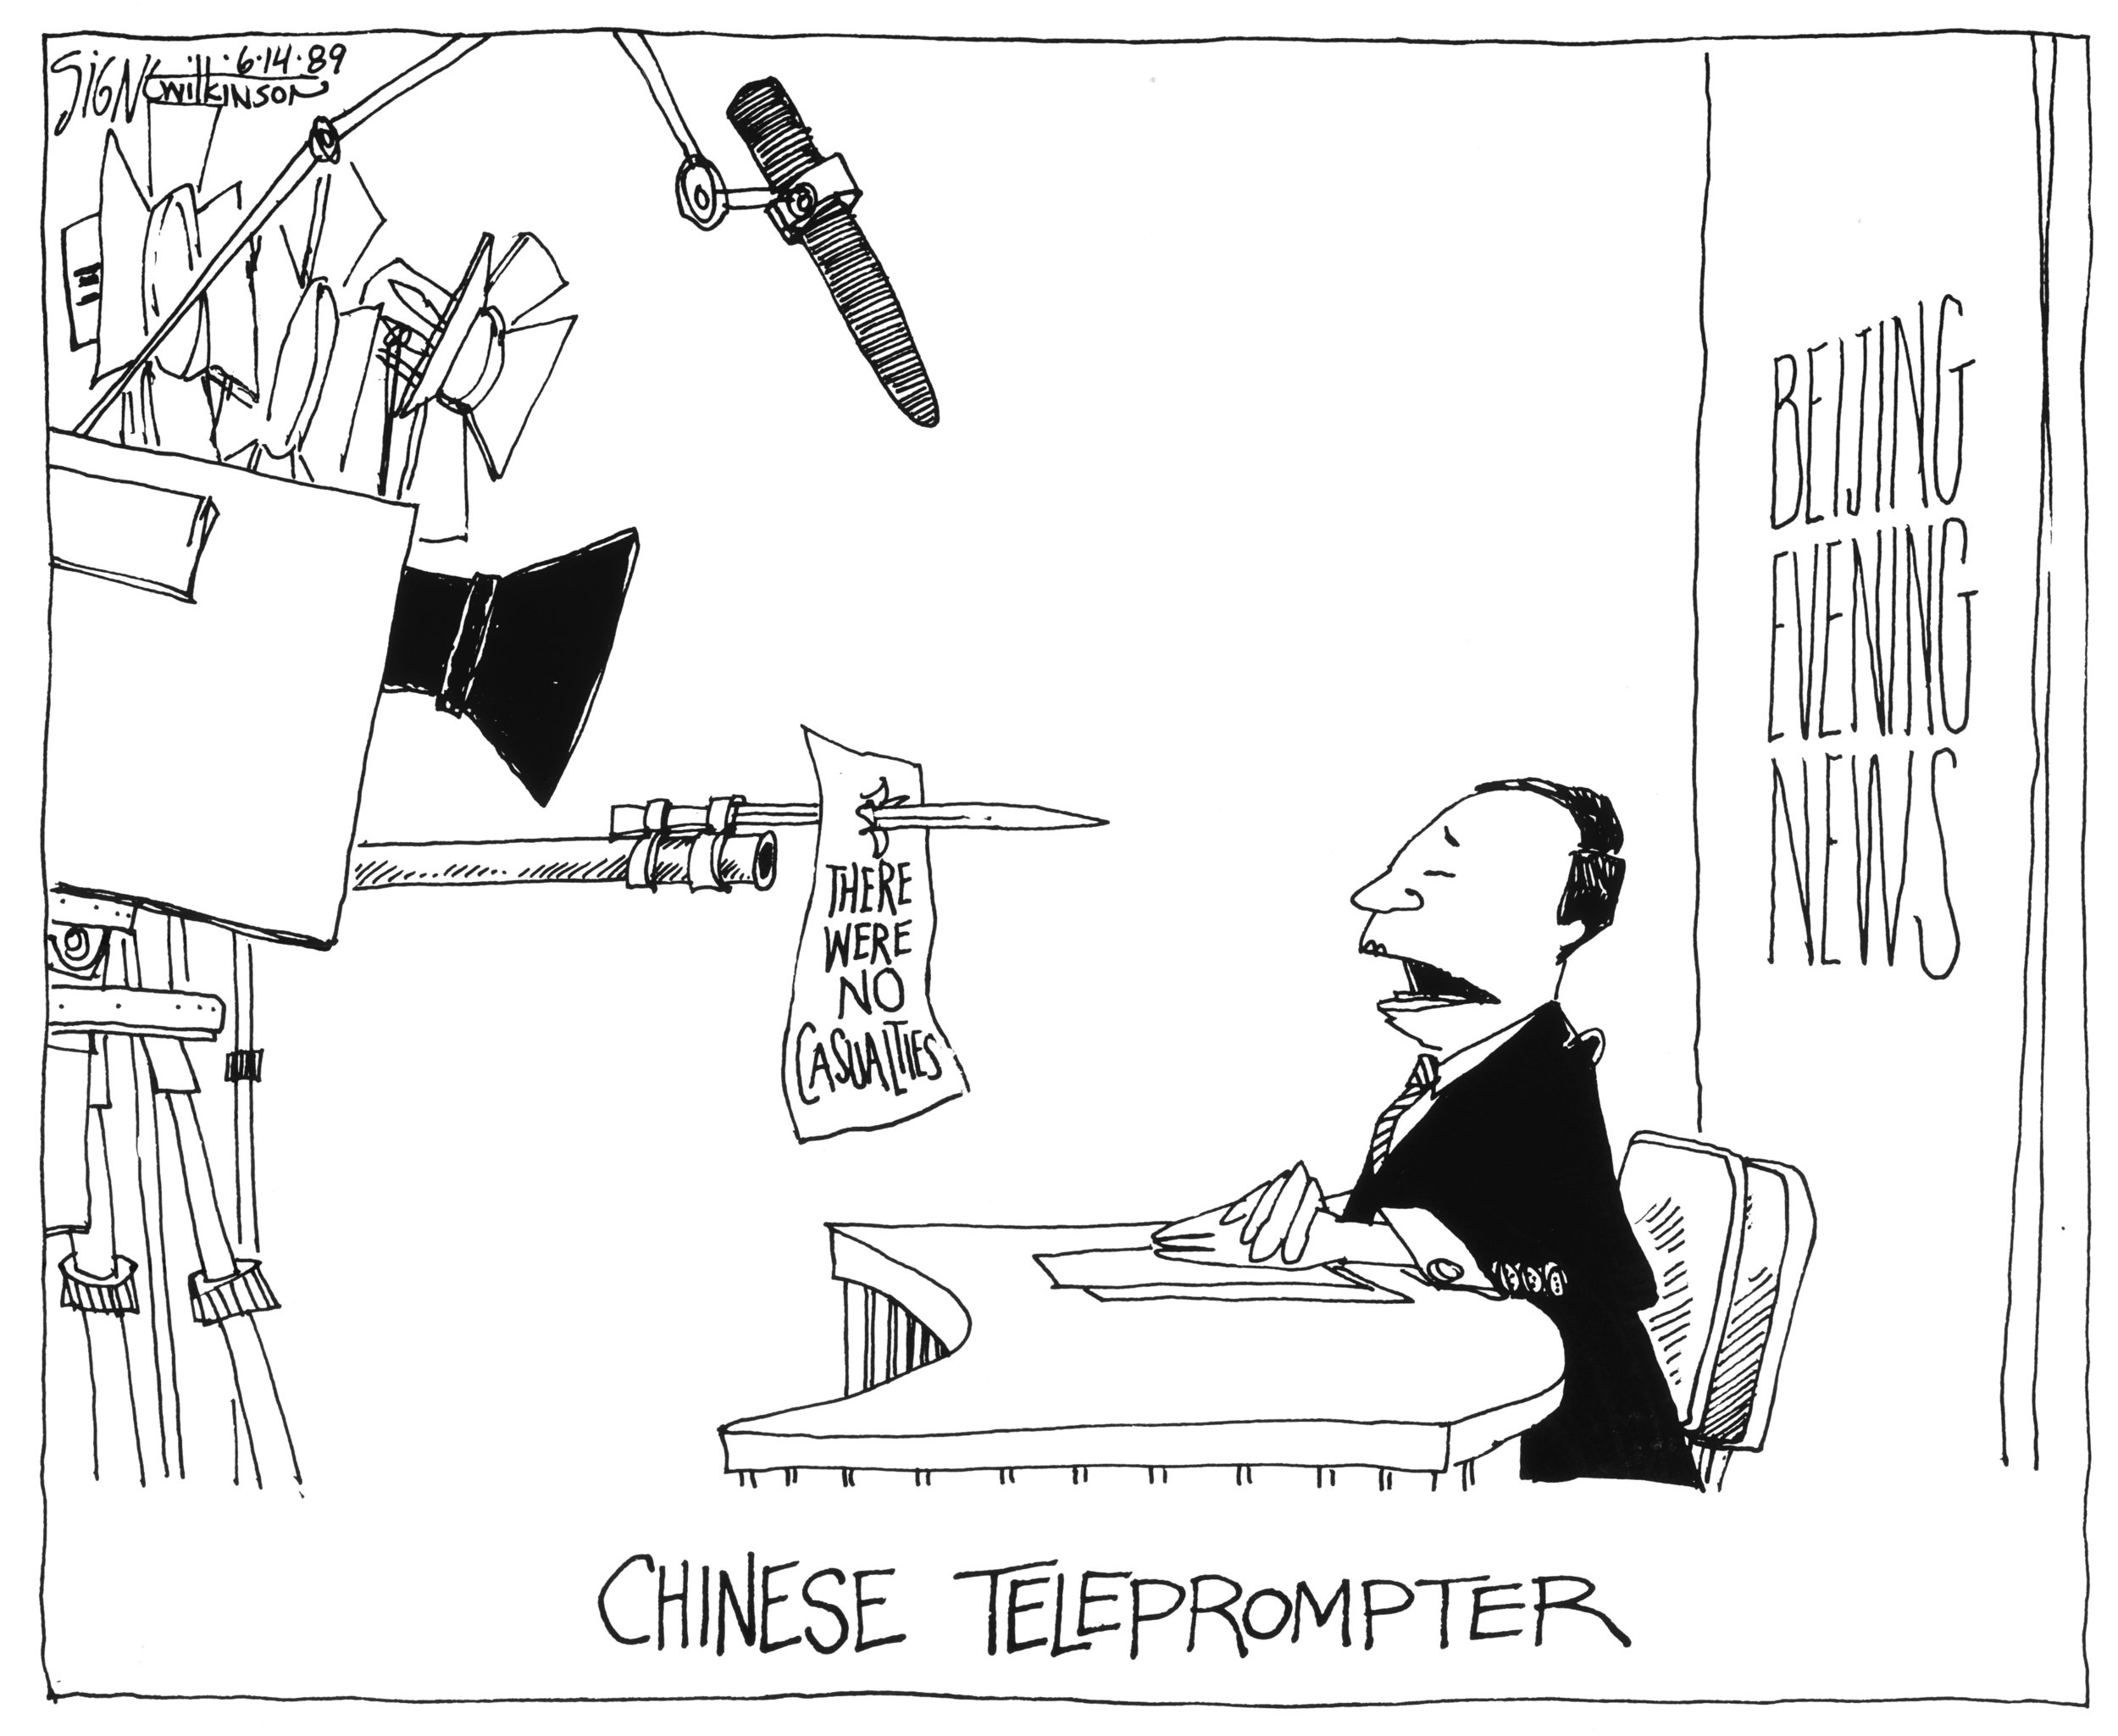 1989-06-14 Chinese Teleprompter.jpg